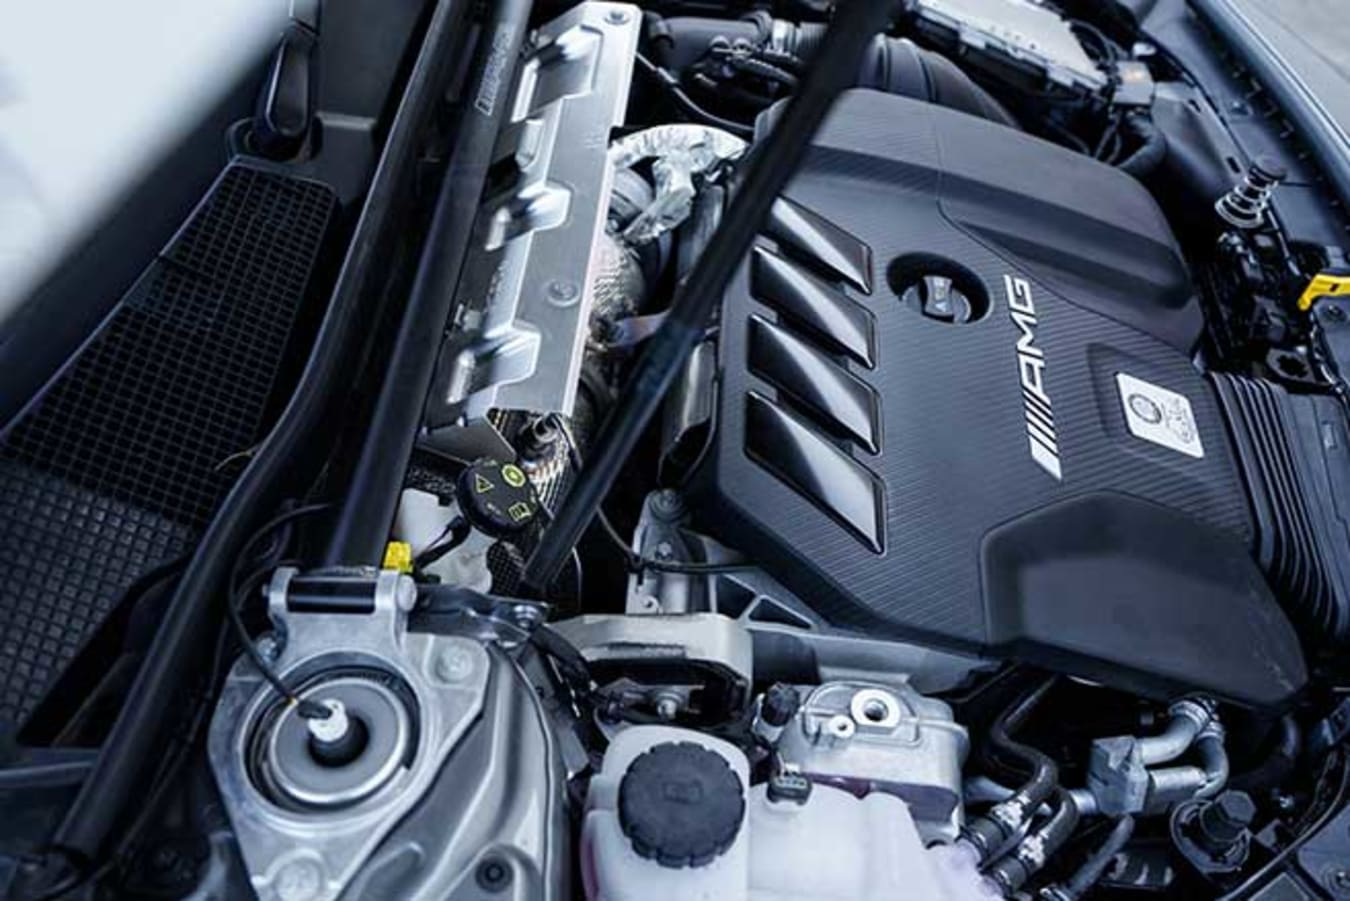 AMG's 2.0-litre turbo four produces 310kW and 500Nm